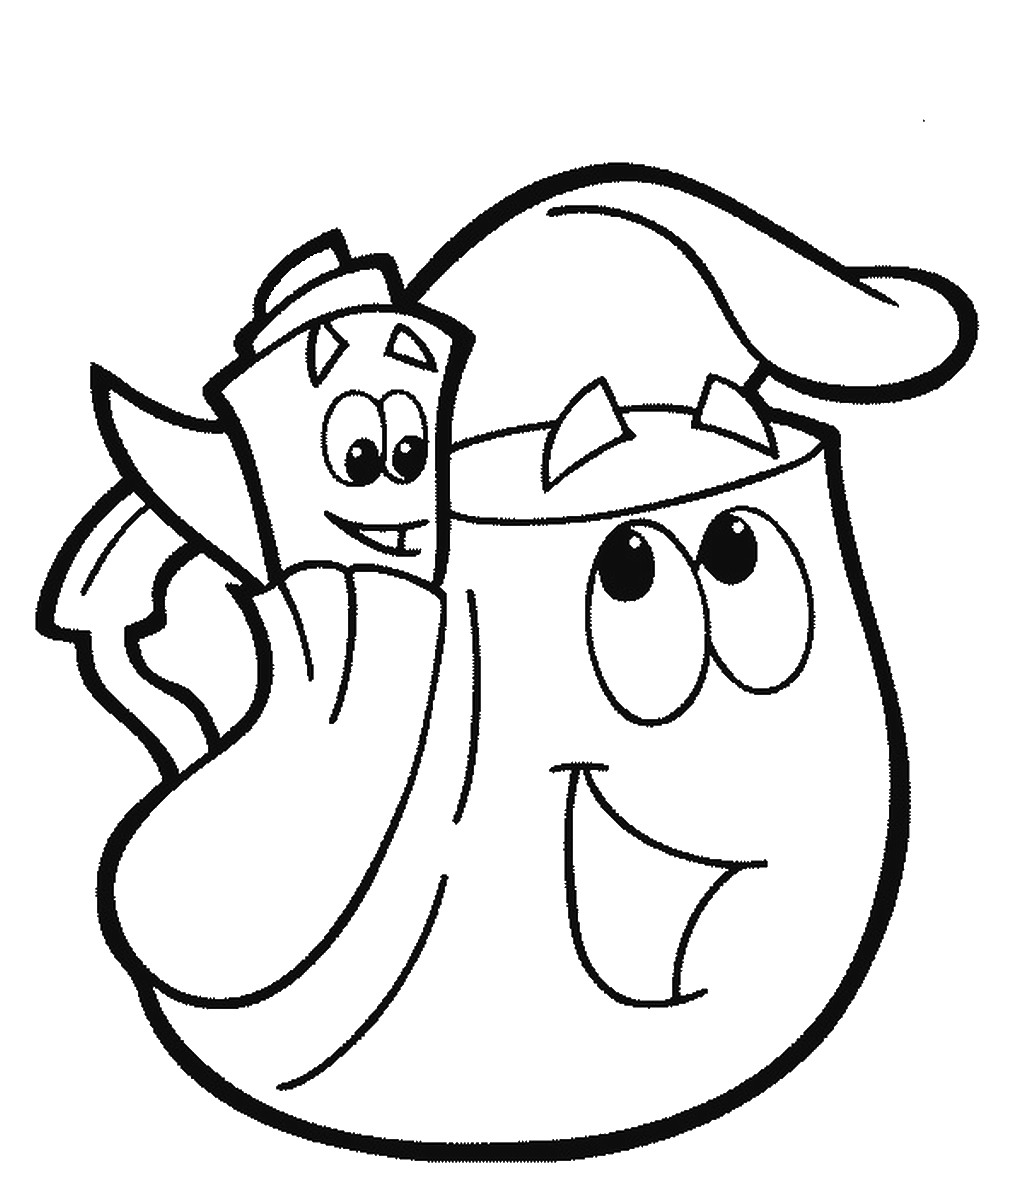 dora pictures to color and print dora pictures to color and print color to pictures dora print and